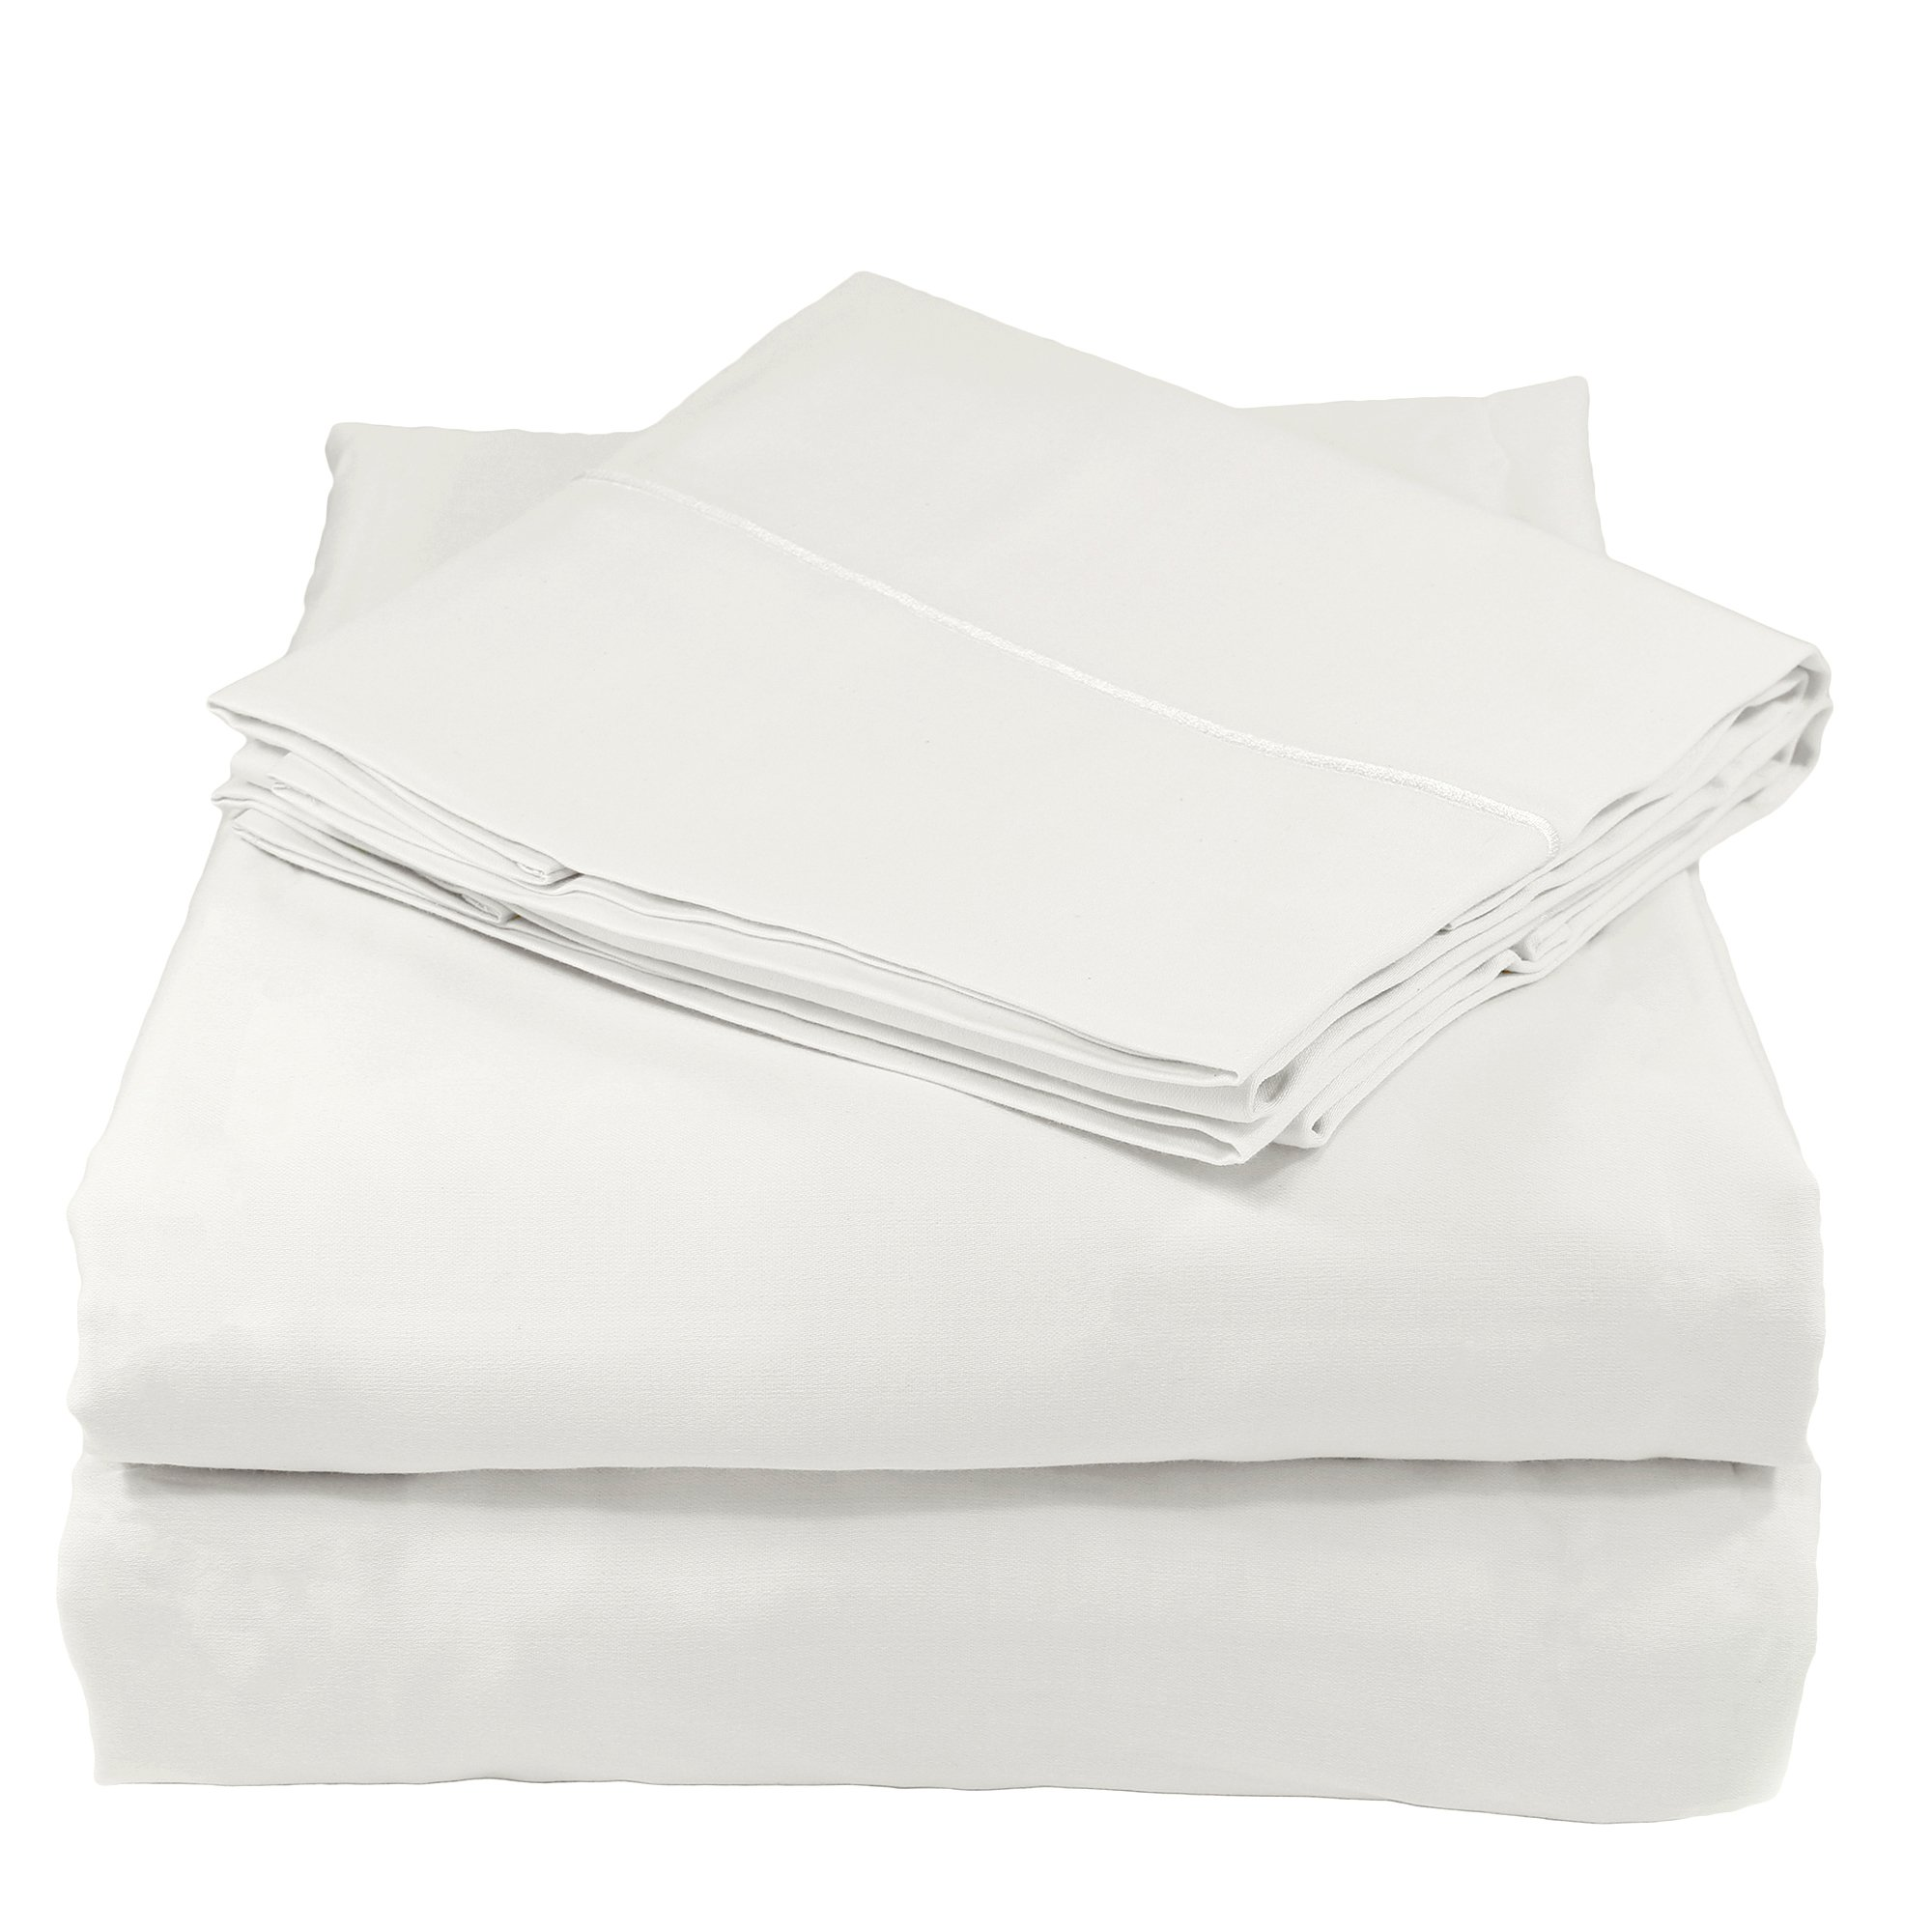 Whisper Organics Bed Sheets, Organic 100% Cotton Sheet Set, 500 Thread Count, 4 Piece: Fitted Sheet, Flat Sheet + 2 Pillowcases, Queen, White